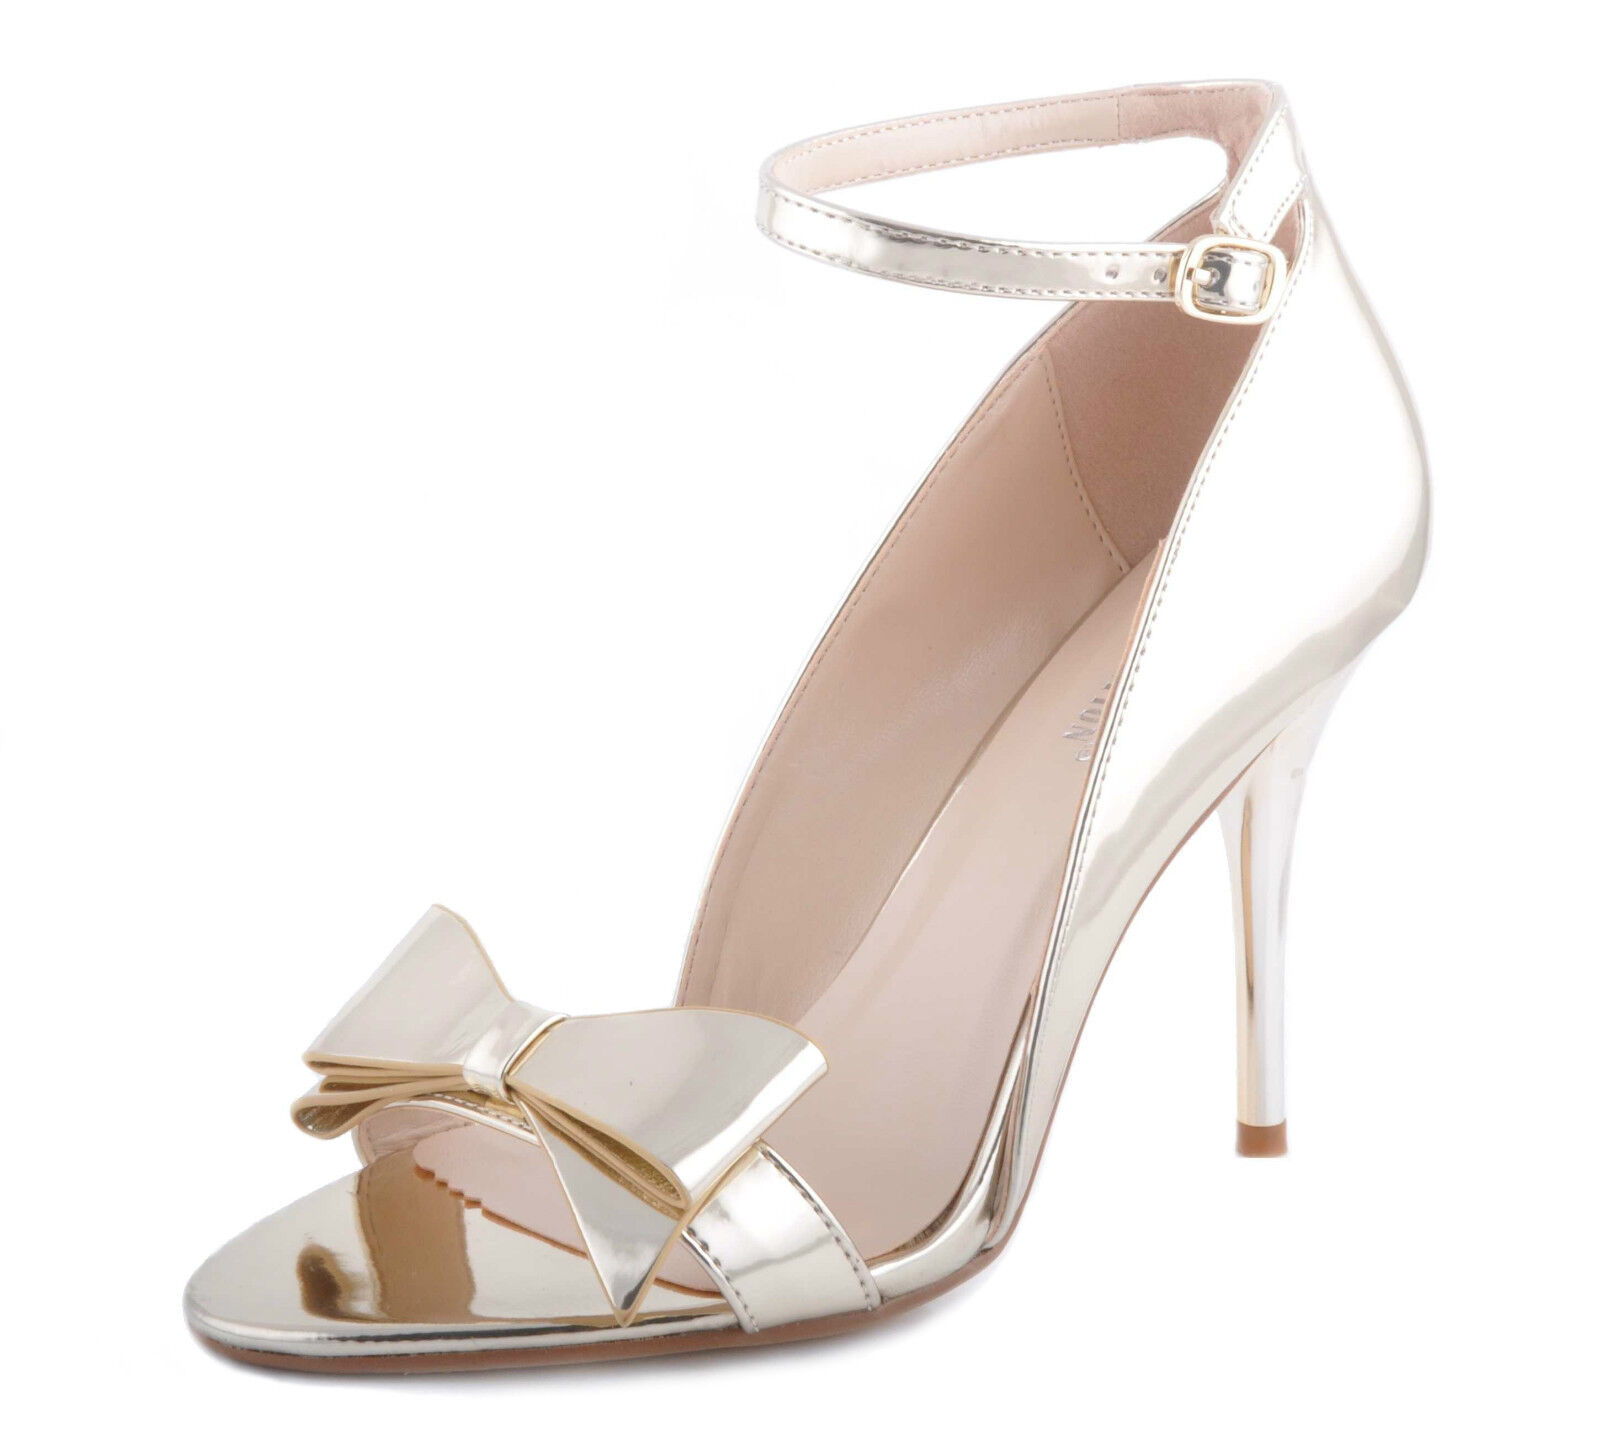 Gold Shiny Metallic Ankle Strap Sandals Bow Wedding High Heels Bridal Party